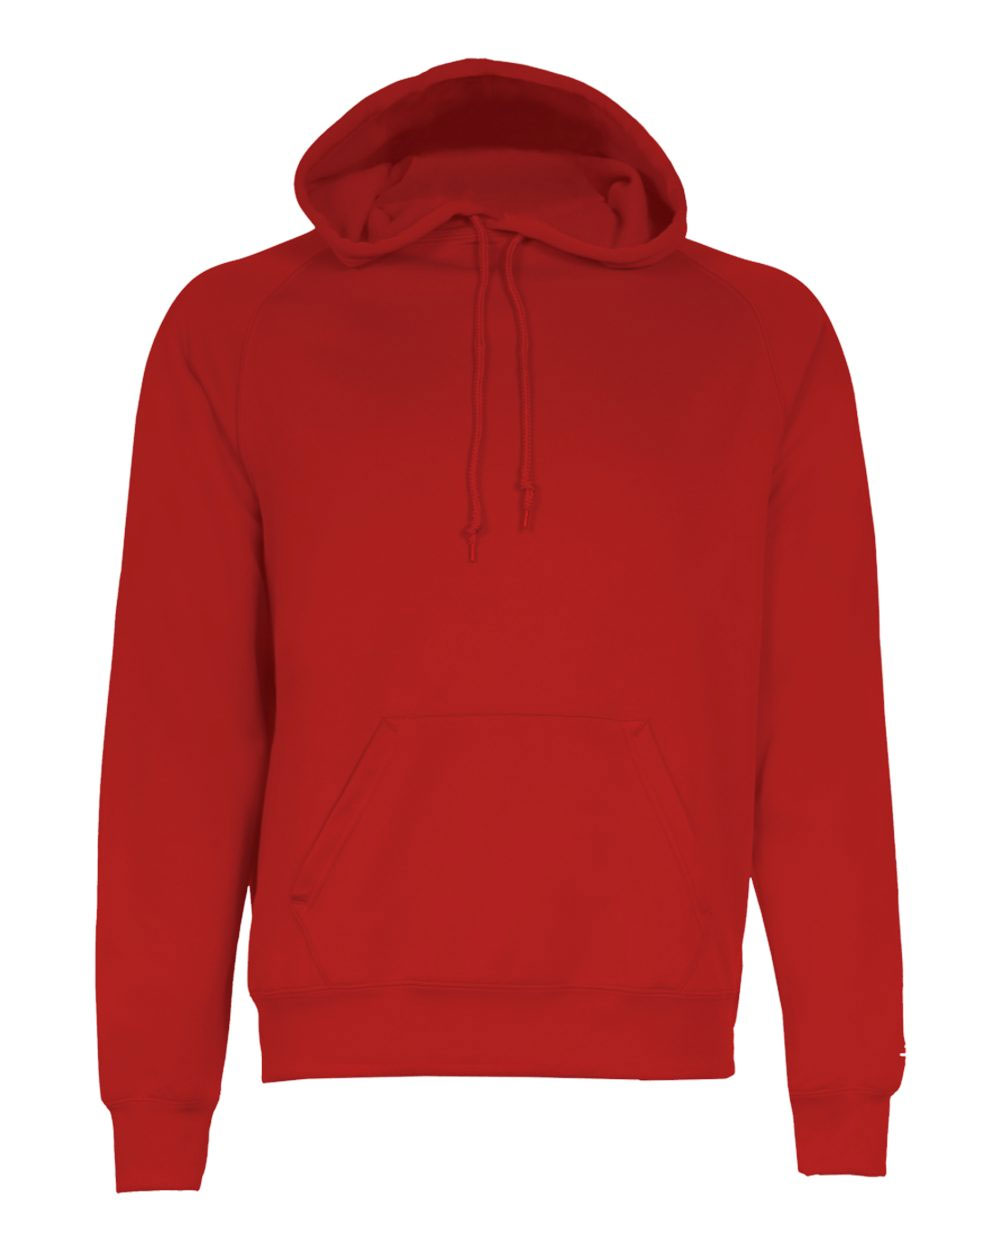 Badger Performance Fleece Ladies Hooded Sweatshirt